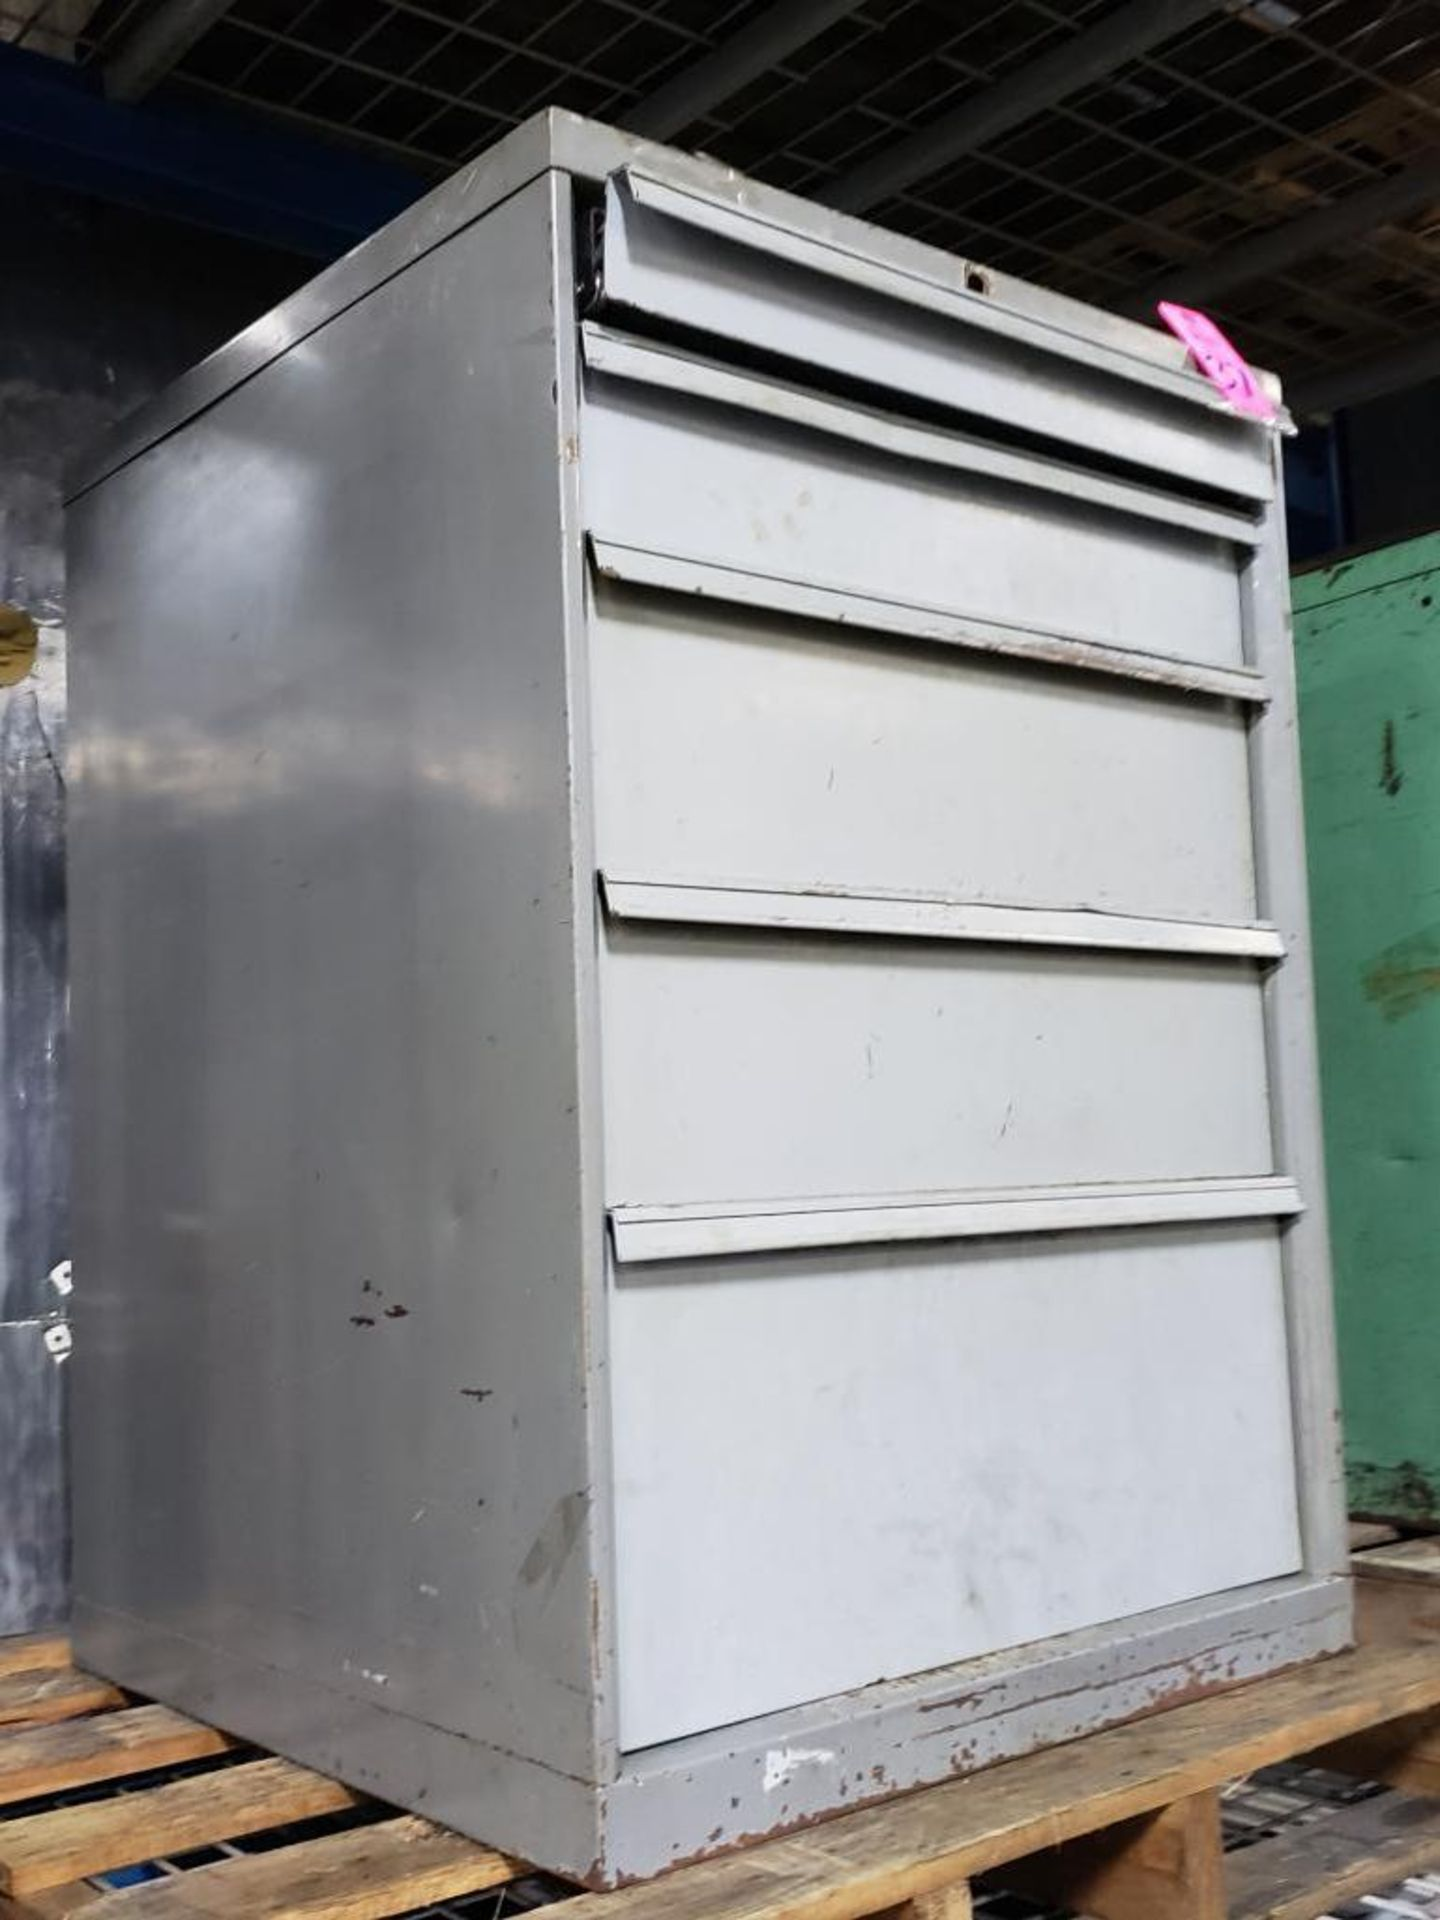 Lot 37 - 5 drawer Tool cabinet. Overall dimensions 39.5Tx28Wx29D.